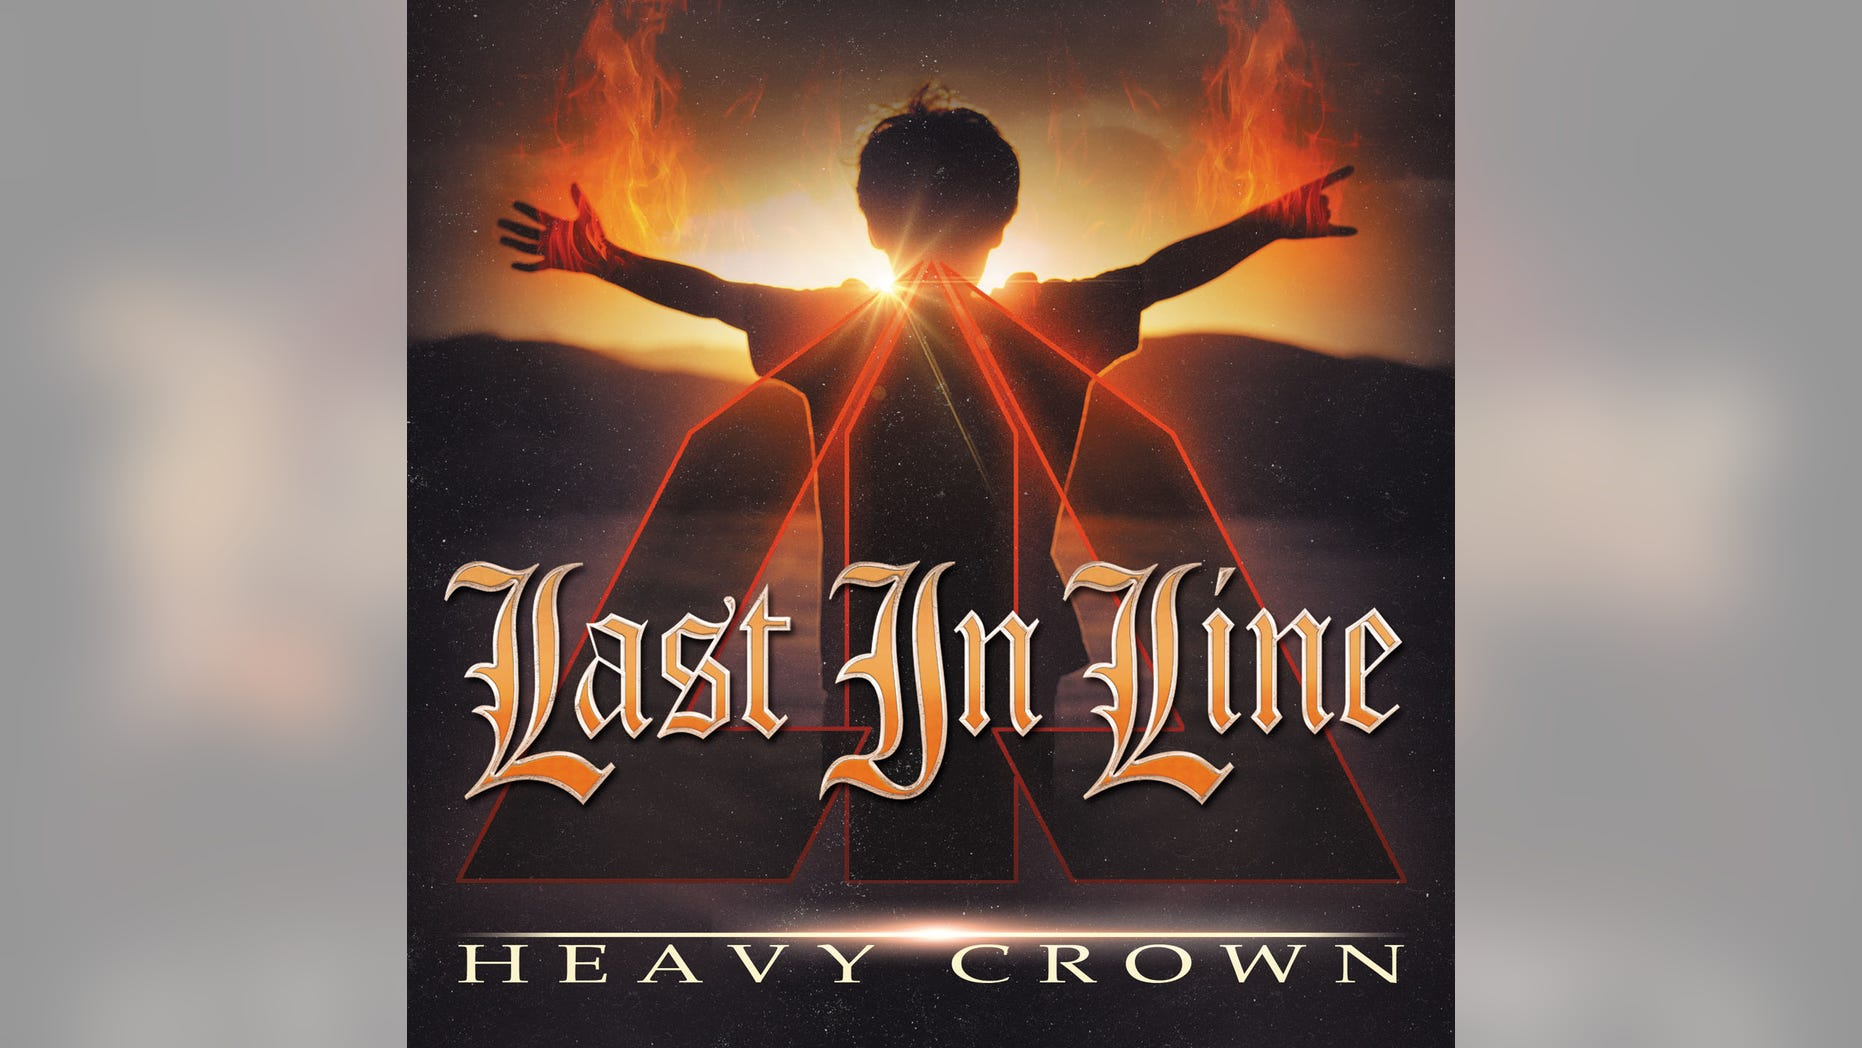 """This CD cover image released by Frontiers SRL shows """"Heavy Crown,"""" a release by Last In Line. (Frontiers SRL via AP)"""